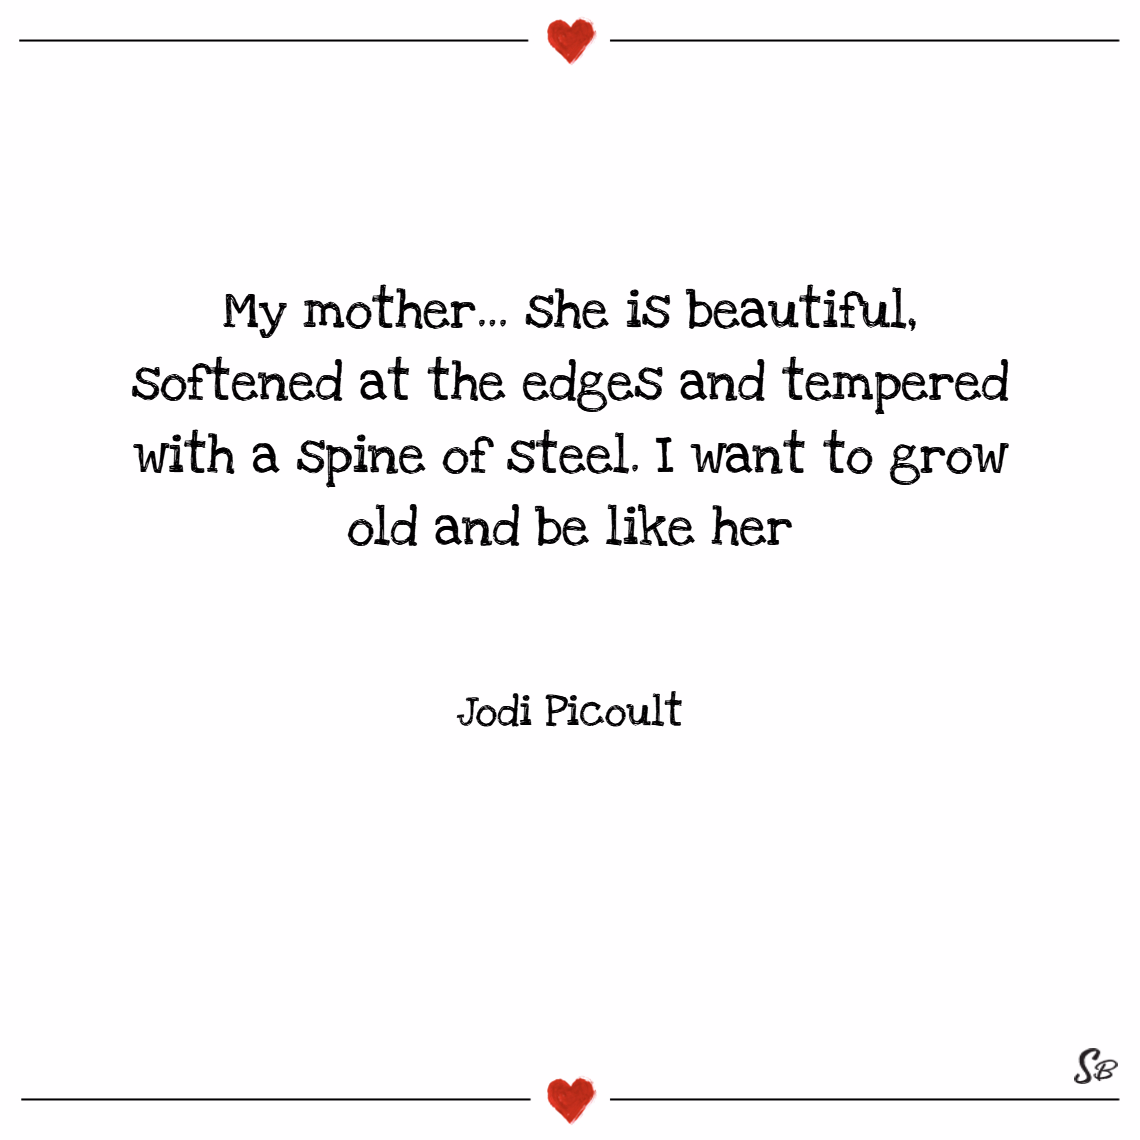 My mother... she is beautiful, softened at the edges and tempered with a spine of steel. i want to grow old and be like her. – jodi picoult